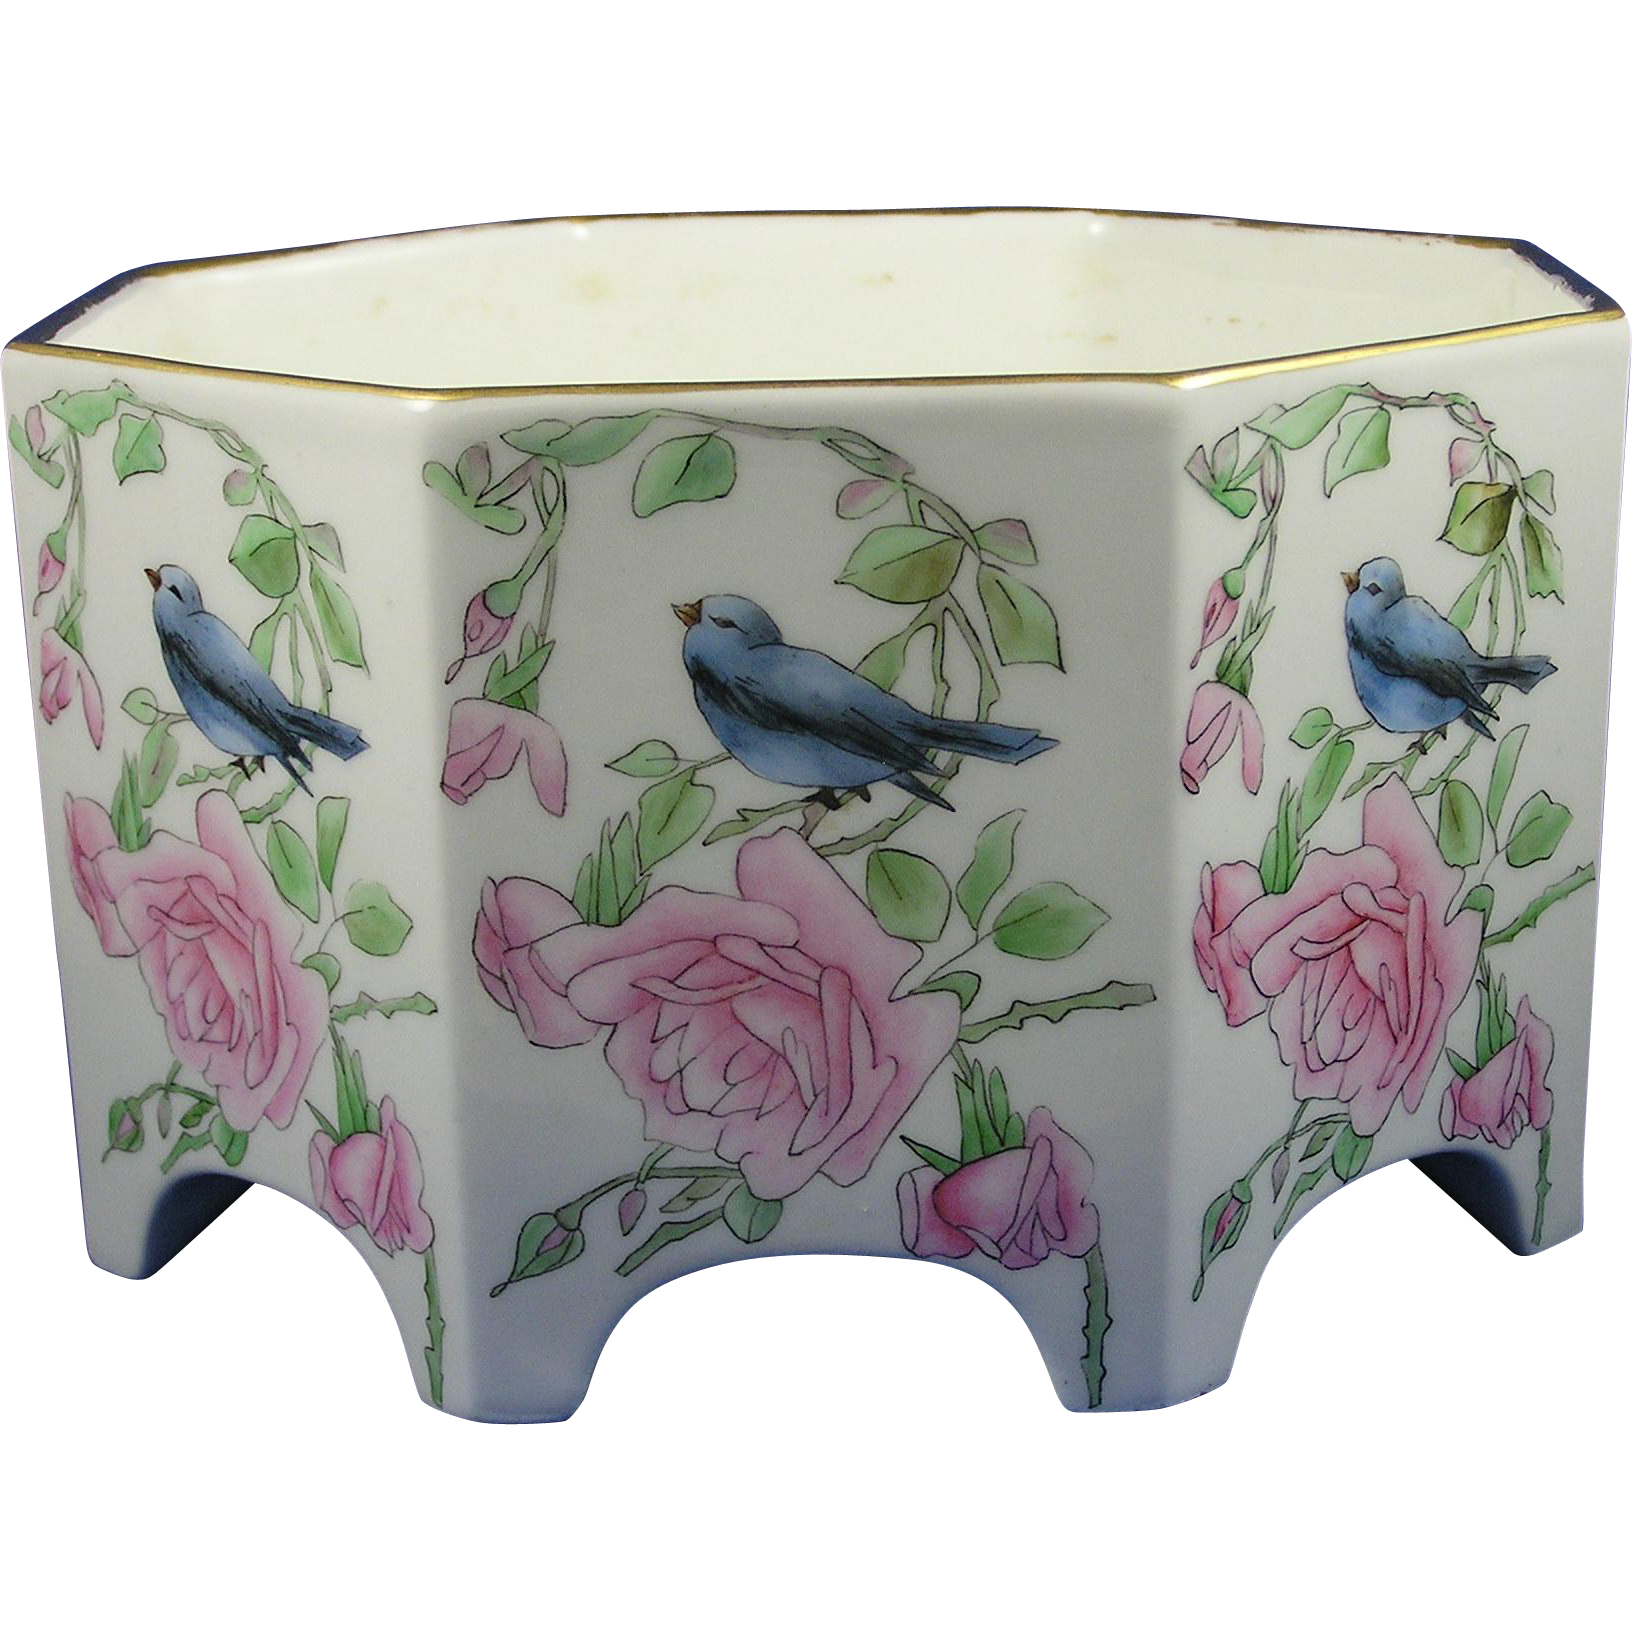 Bernardaud & Co. (B&Co.) Limoges Arts & Crafts Bird & Roses Design Vase/Jardinière (c.1900-1914)